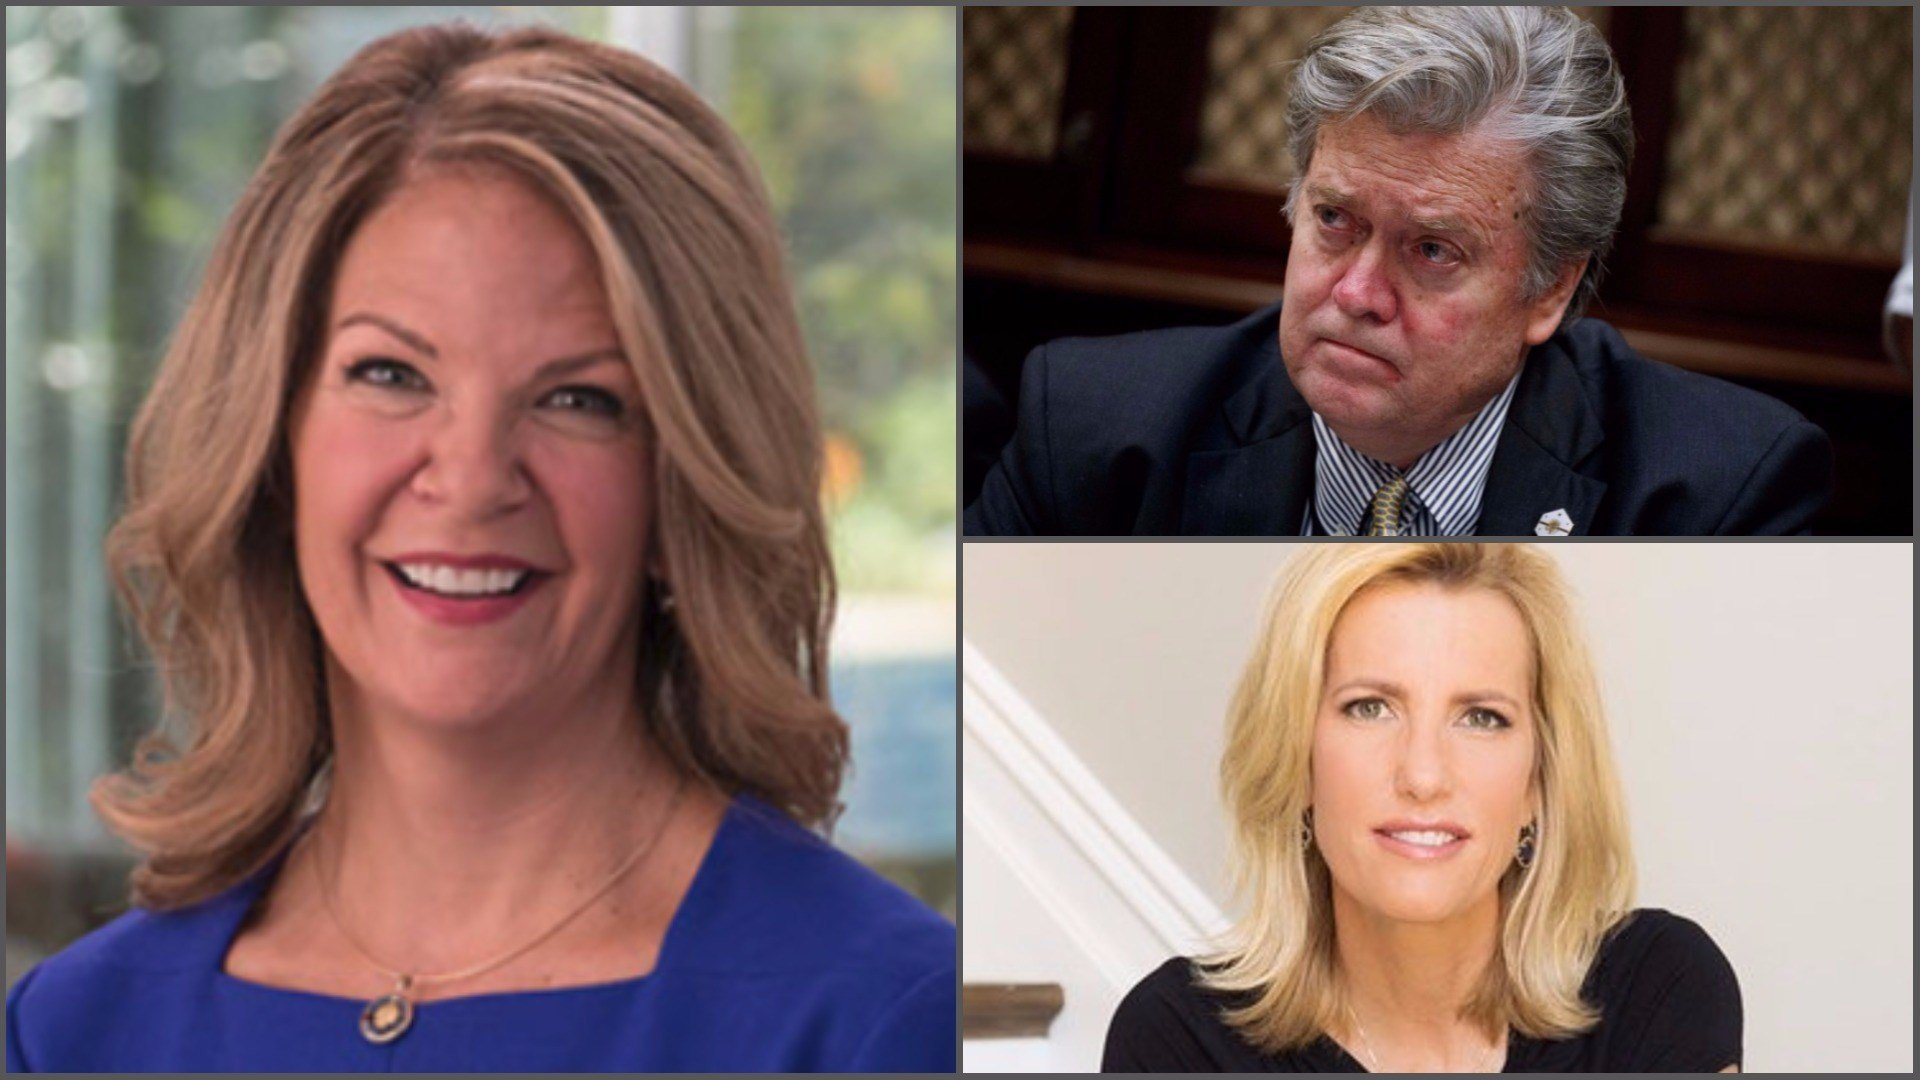 Former presidential strategist Steve Bannon plans to appear with Arizona Senate candidate Kelli Ward in a program headlined by conservative radio host Laura Ingraham. (Sources: KelliWard.com, AP, Deborah Feingold)